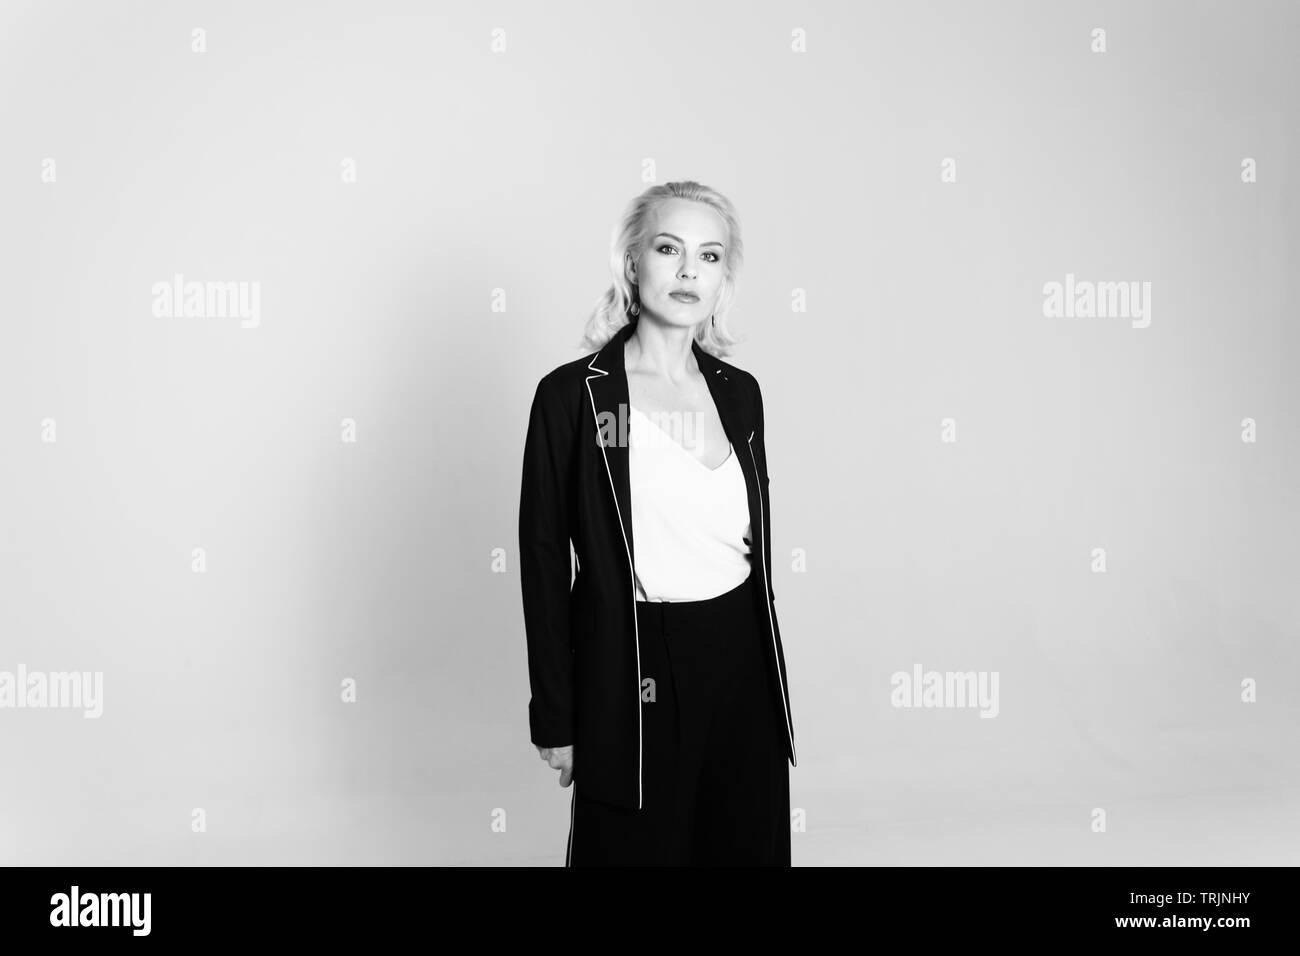 Studio portrait of beautiful blond woman in a black dress against white plain background - Stock Image